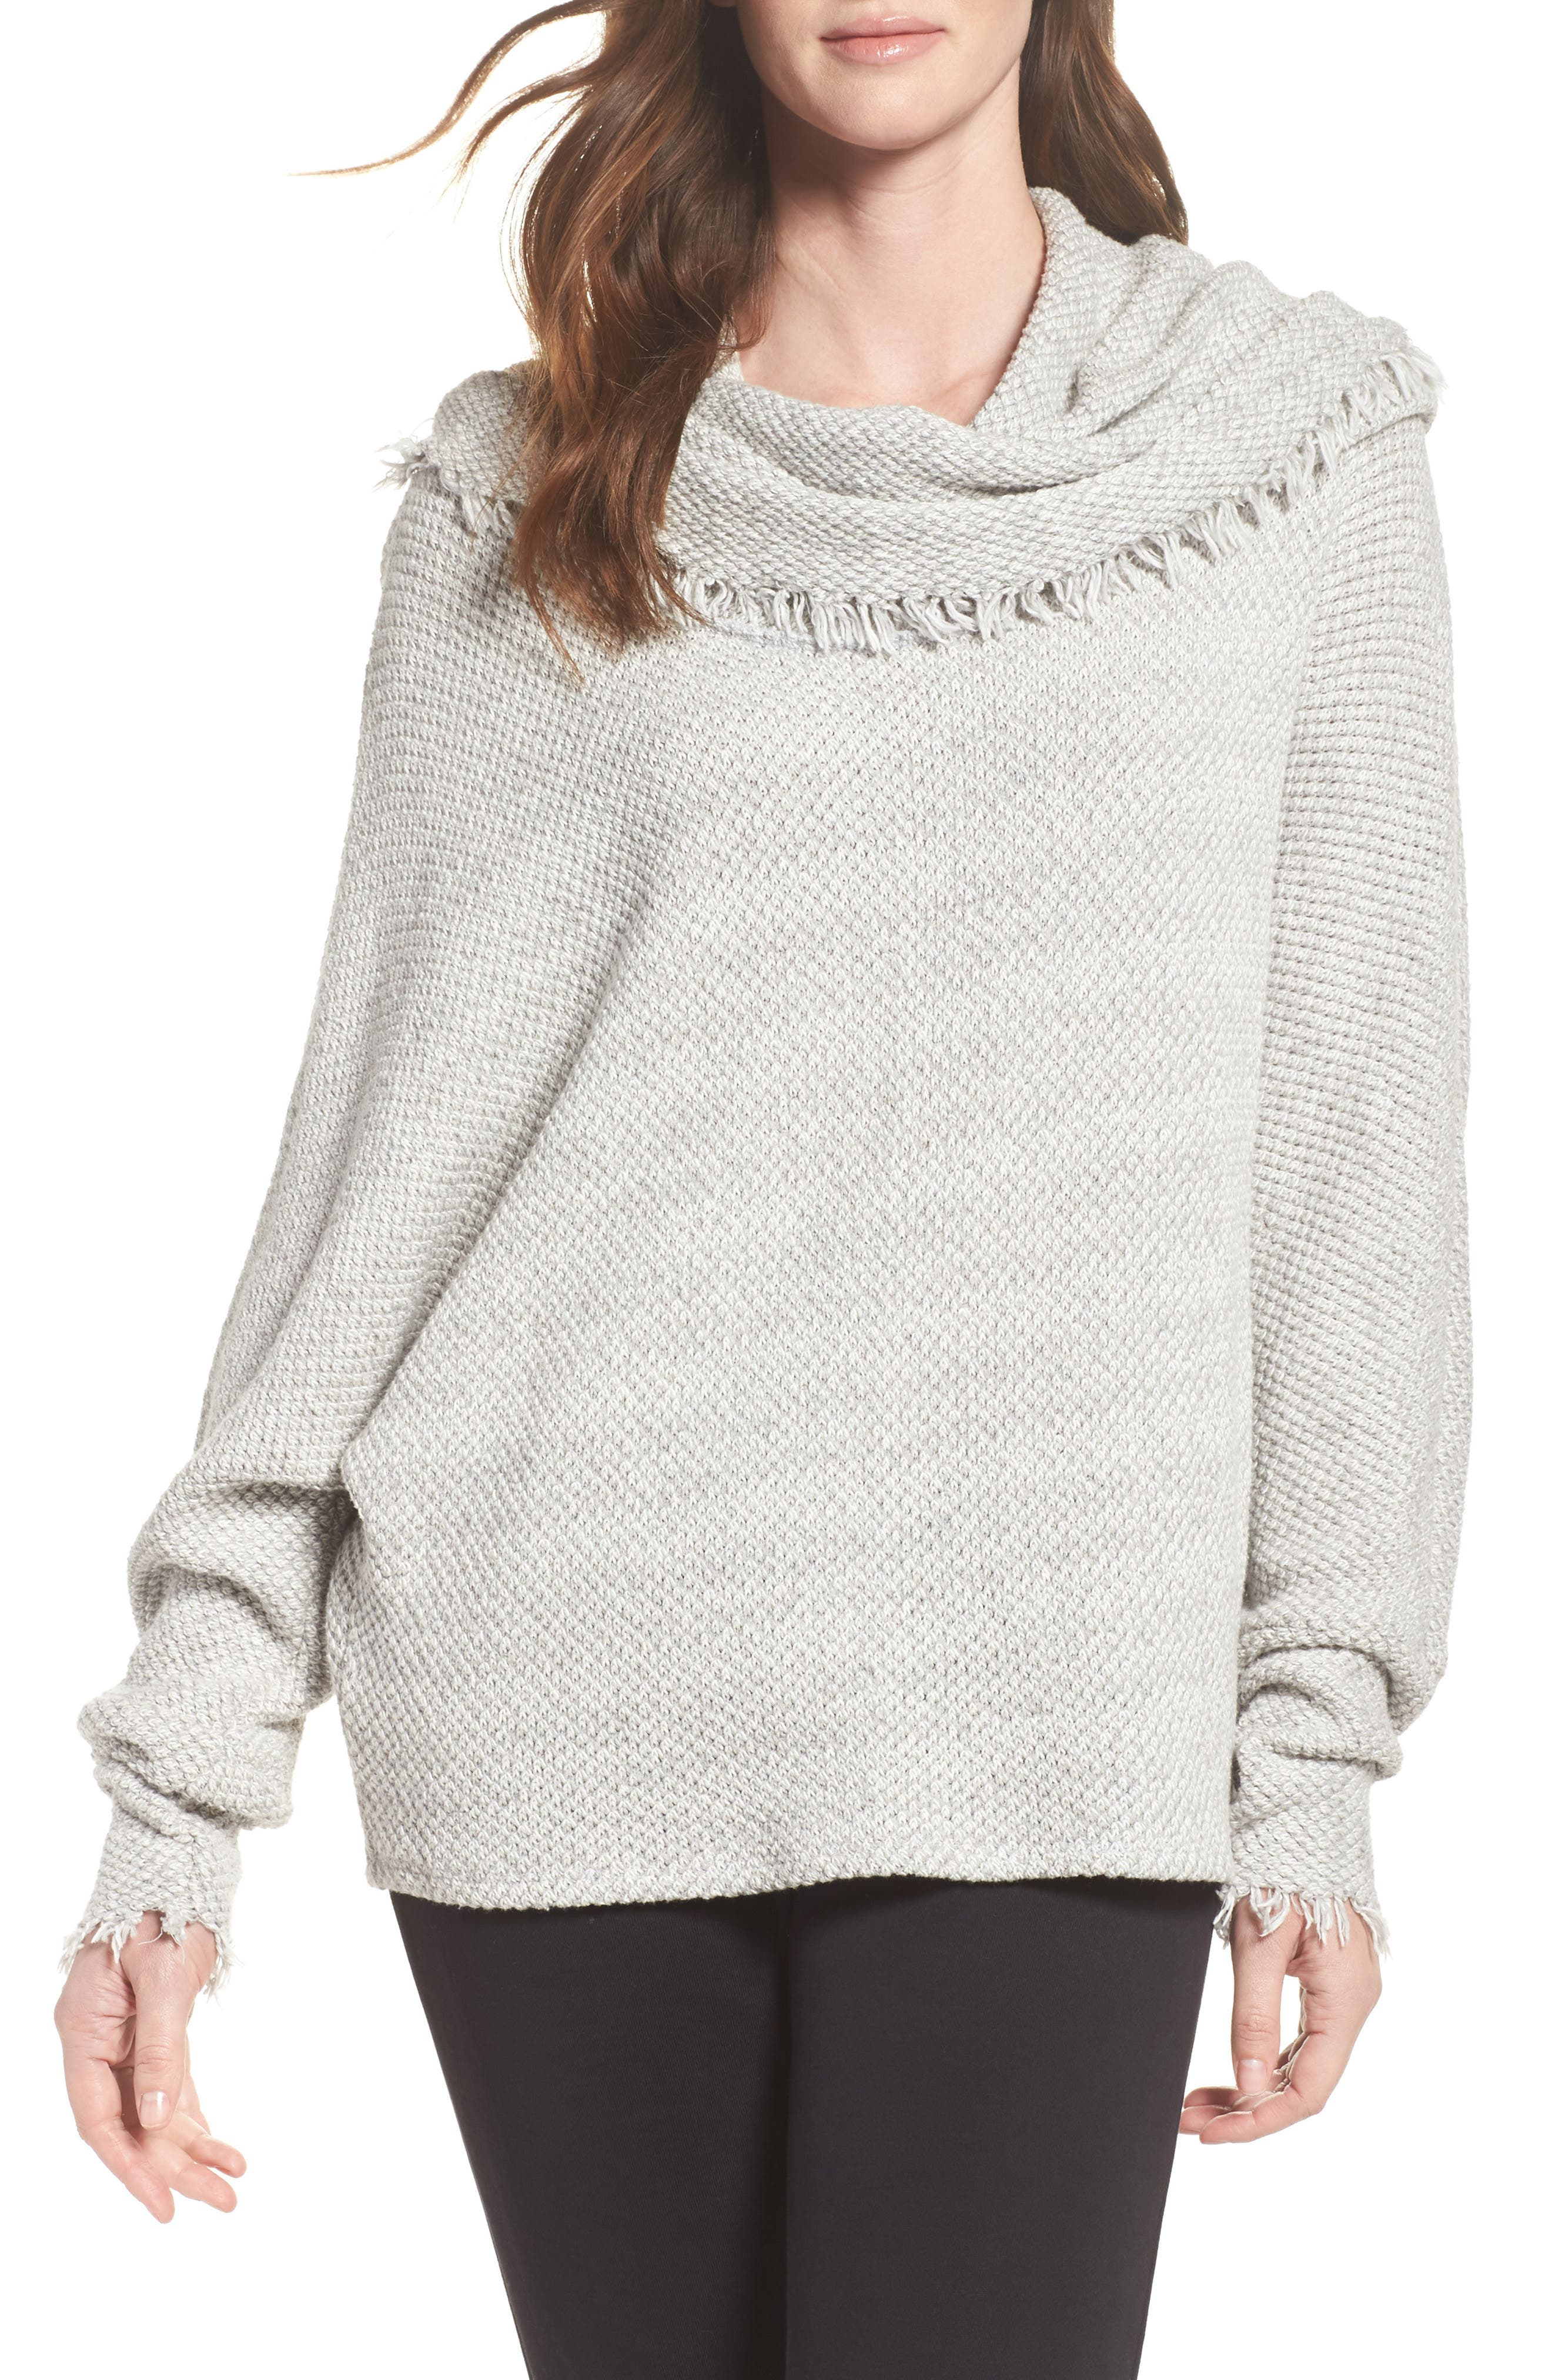 Oversize Turtleneck Sweater,                             Main thumbnail 1, color,                             035